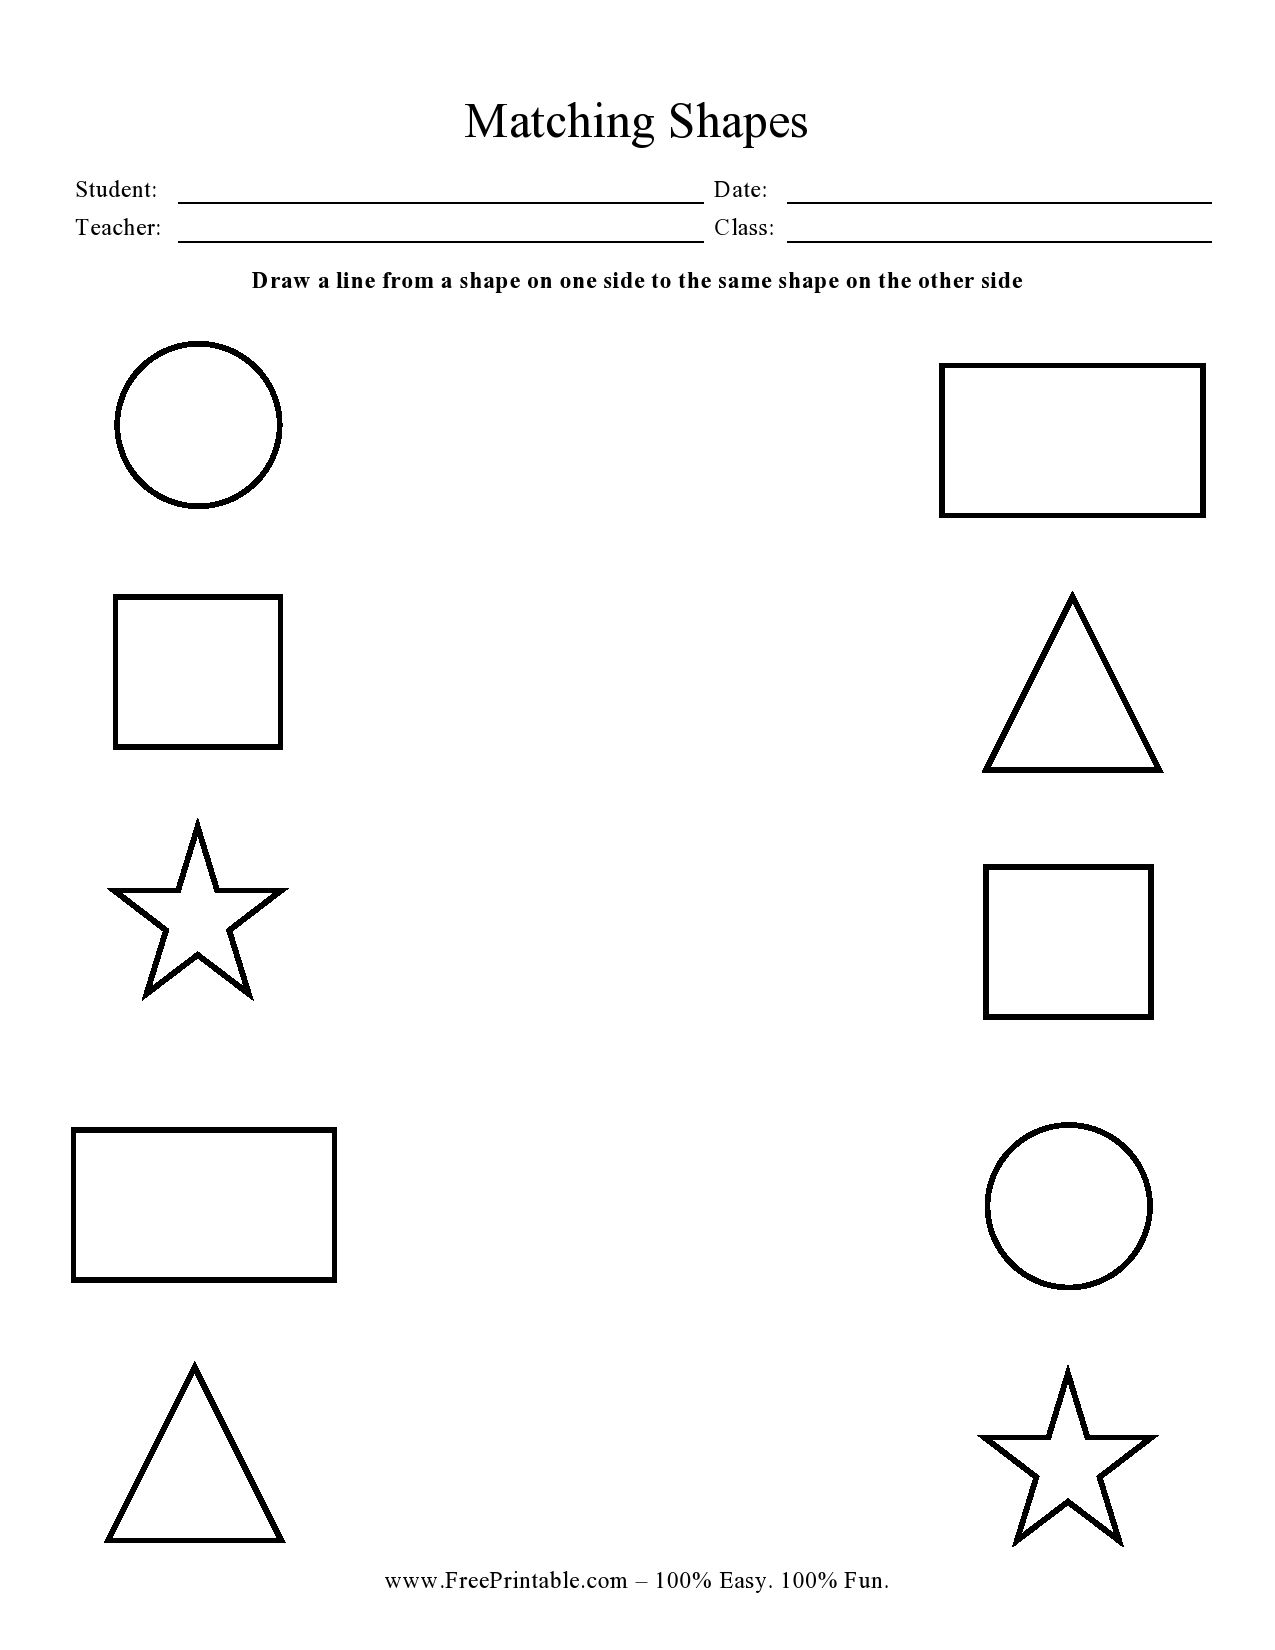 Customize Your Free Printable Matching Shapes